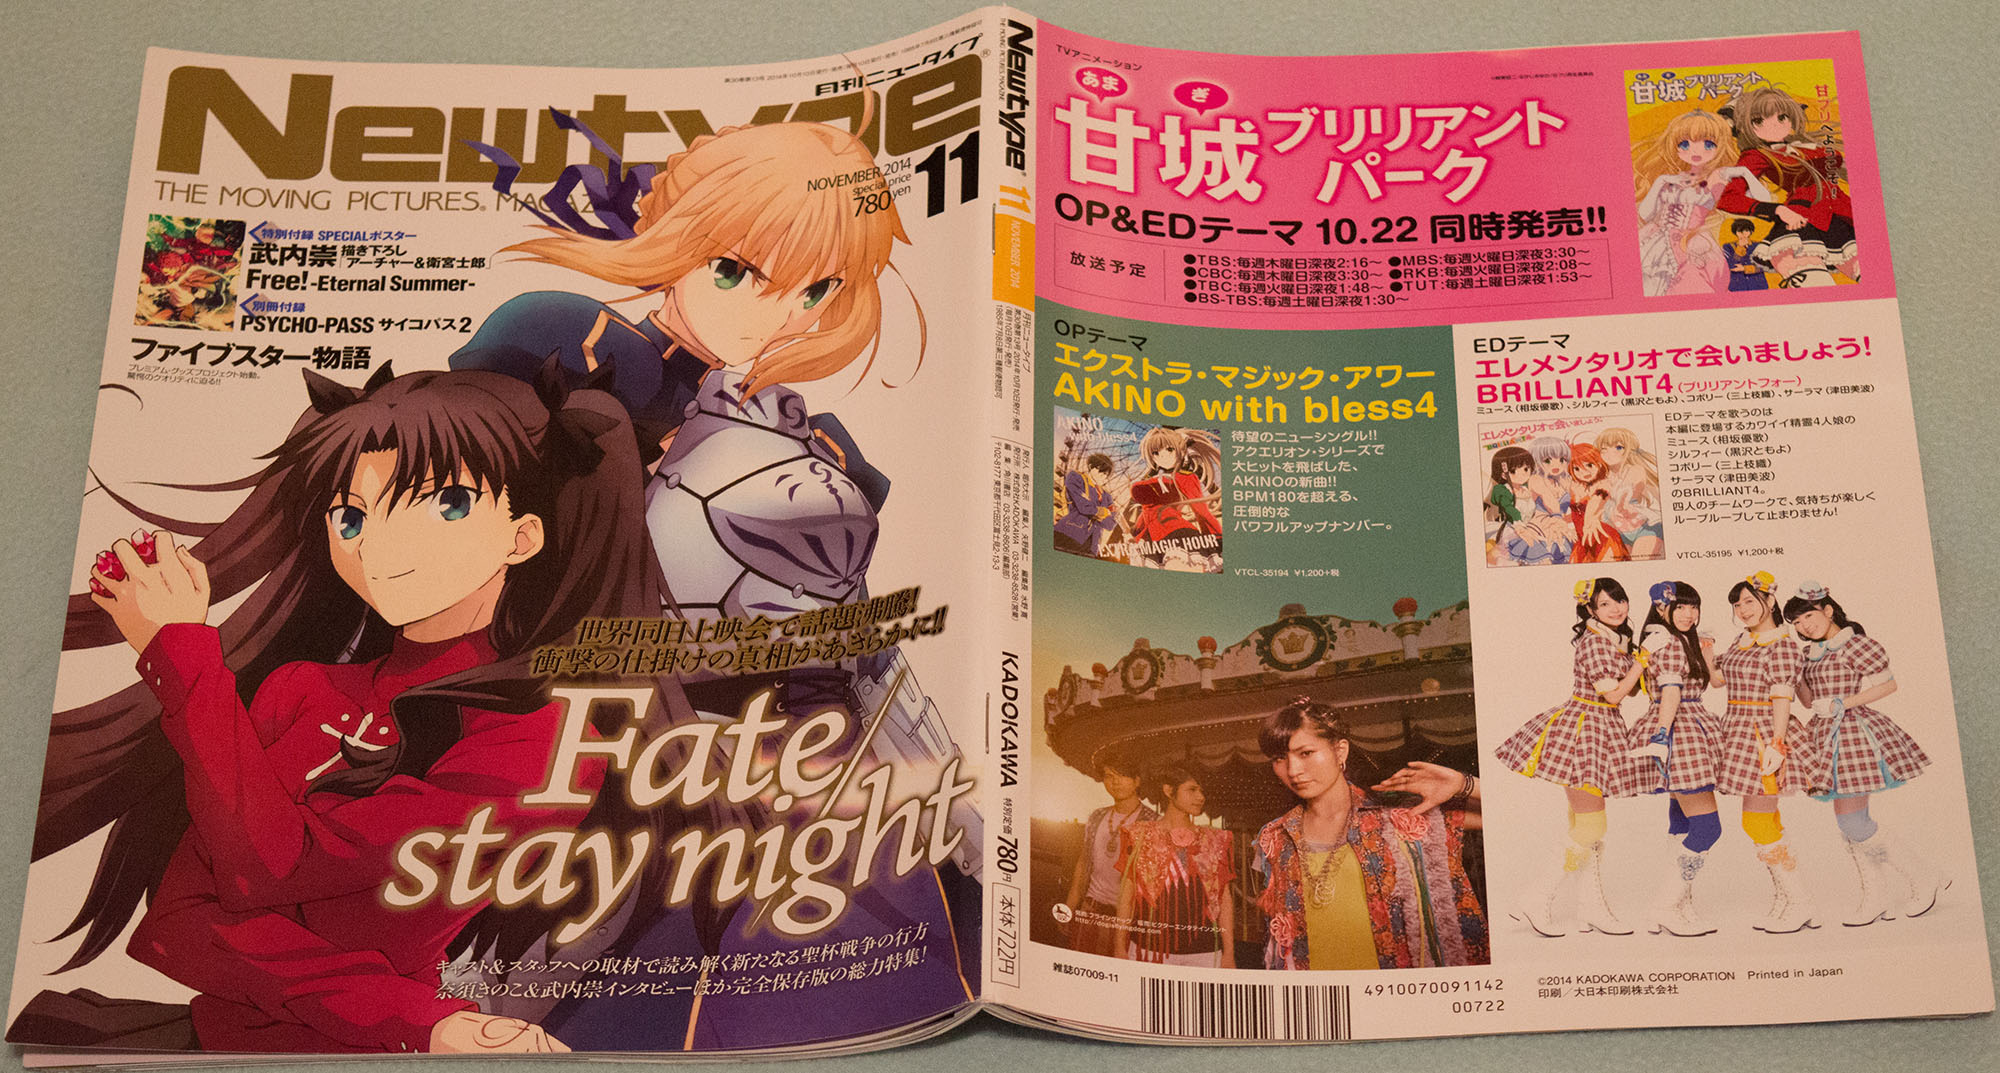 Haruhichan.com-Newtype-November-2014-Fate Stay Night 2014 unlimited blade works inou battle-Cover-and-Back